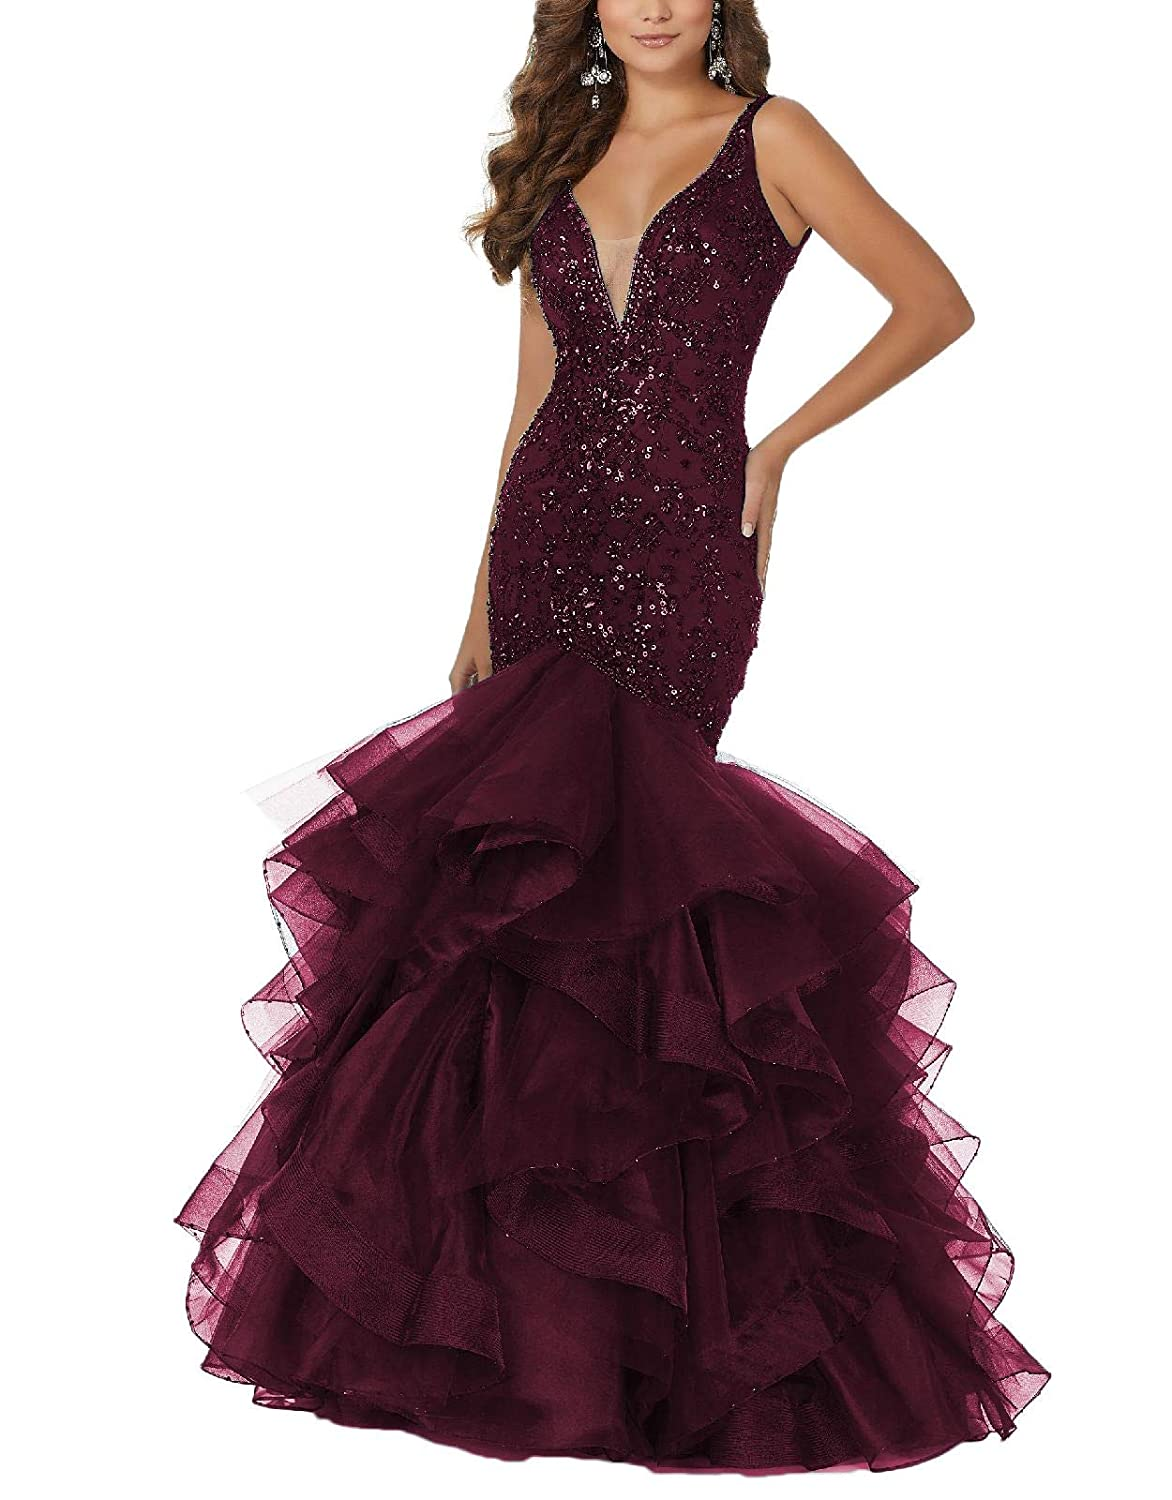 Darkred Yisha Bello Womens Sequins VNeck Mermaid Prom Gowns Long Tulle Beaded Evening Formal Party Dress